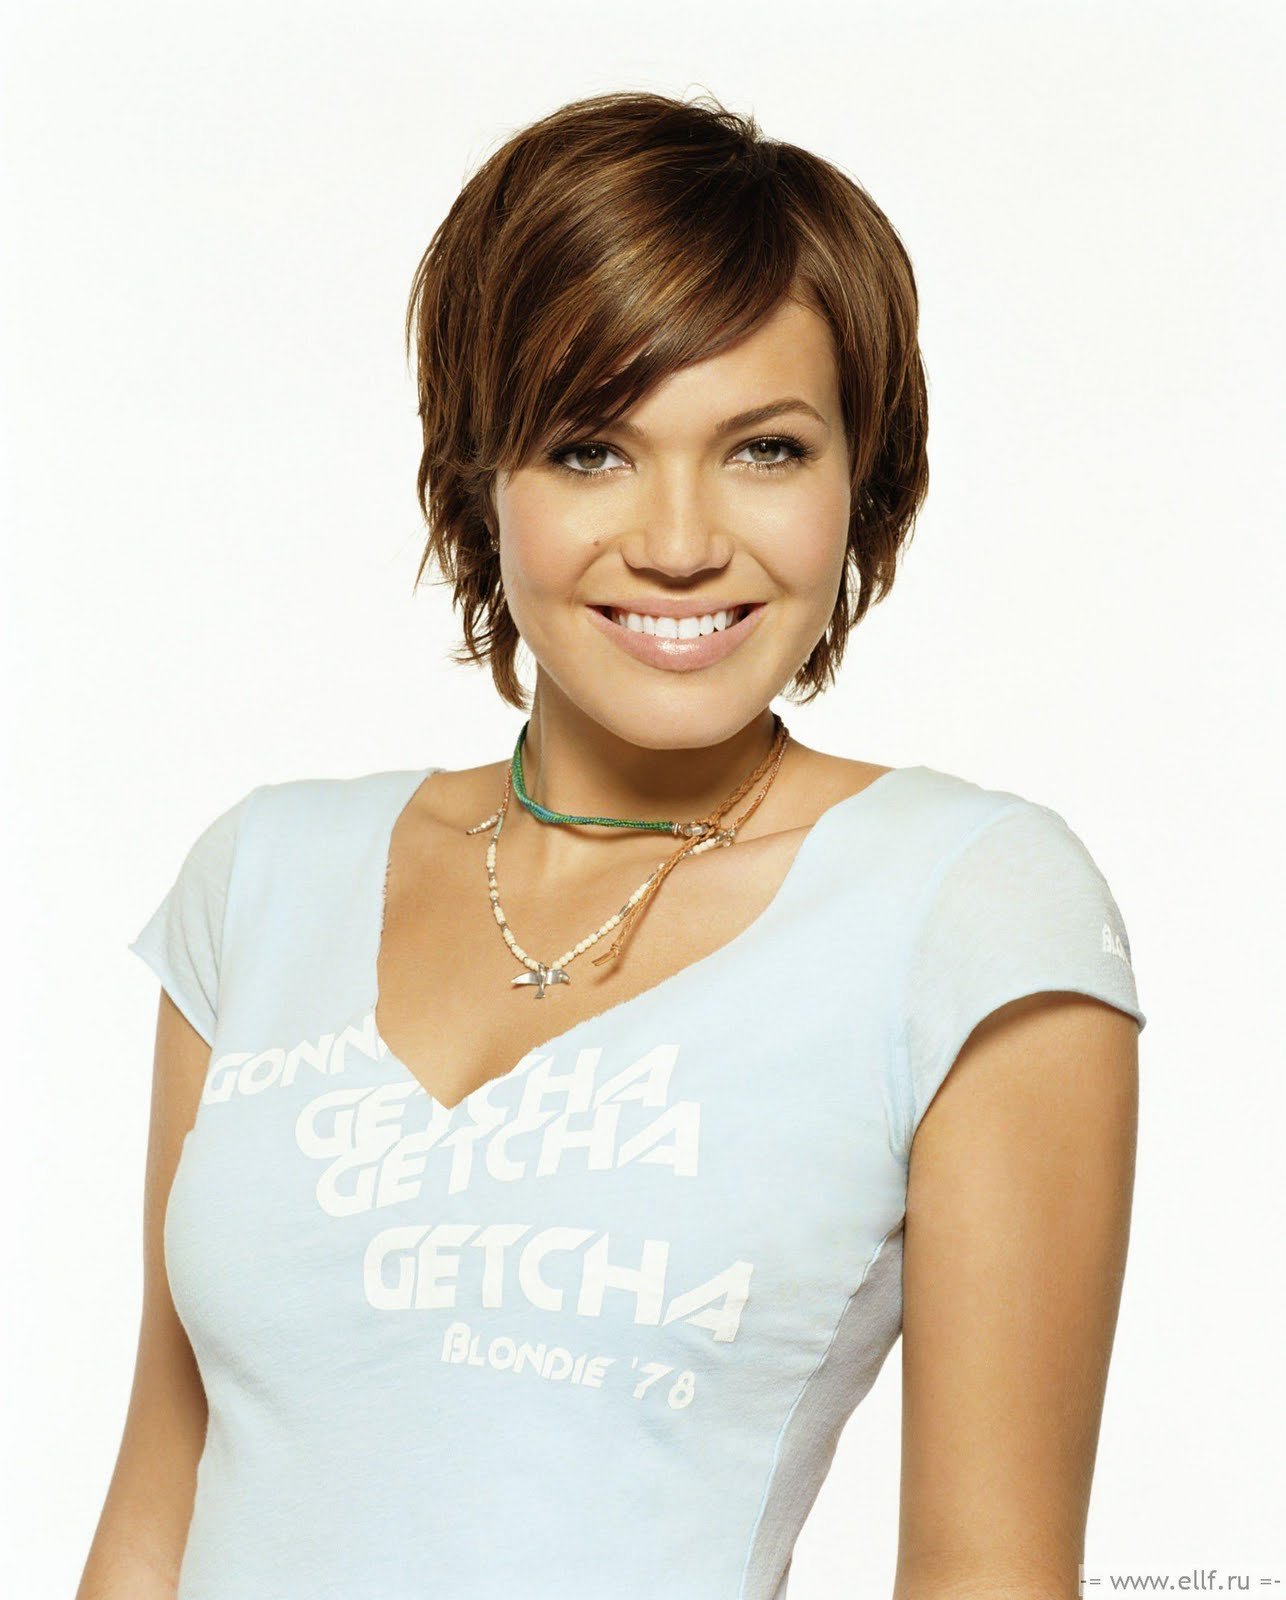 ... mandy moore short hair displaying 16 images for mandy moore short hair